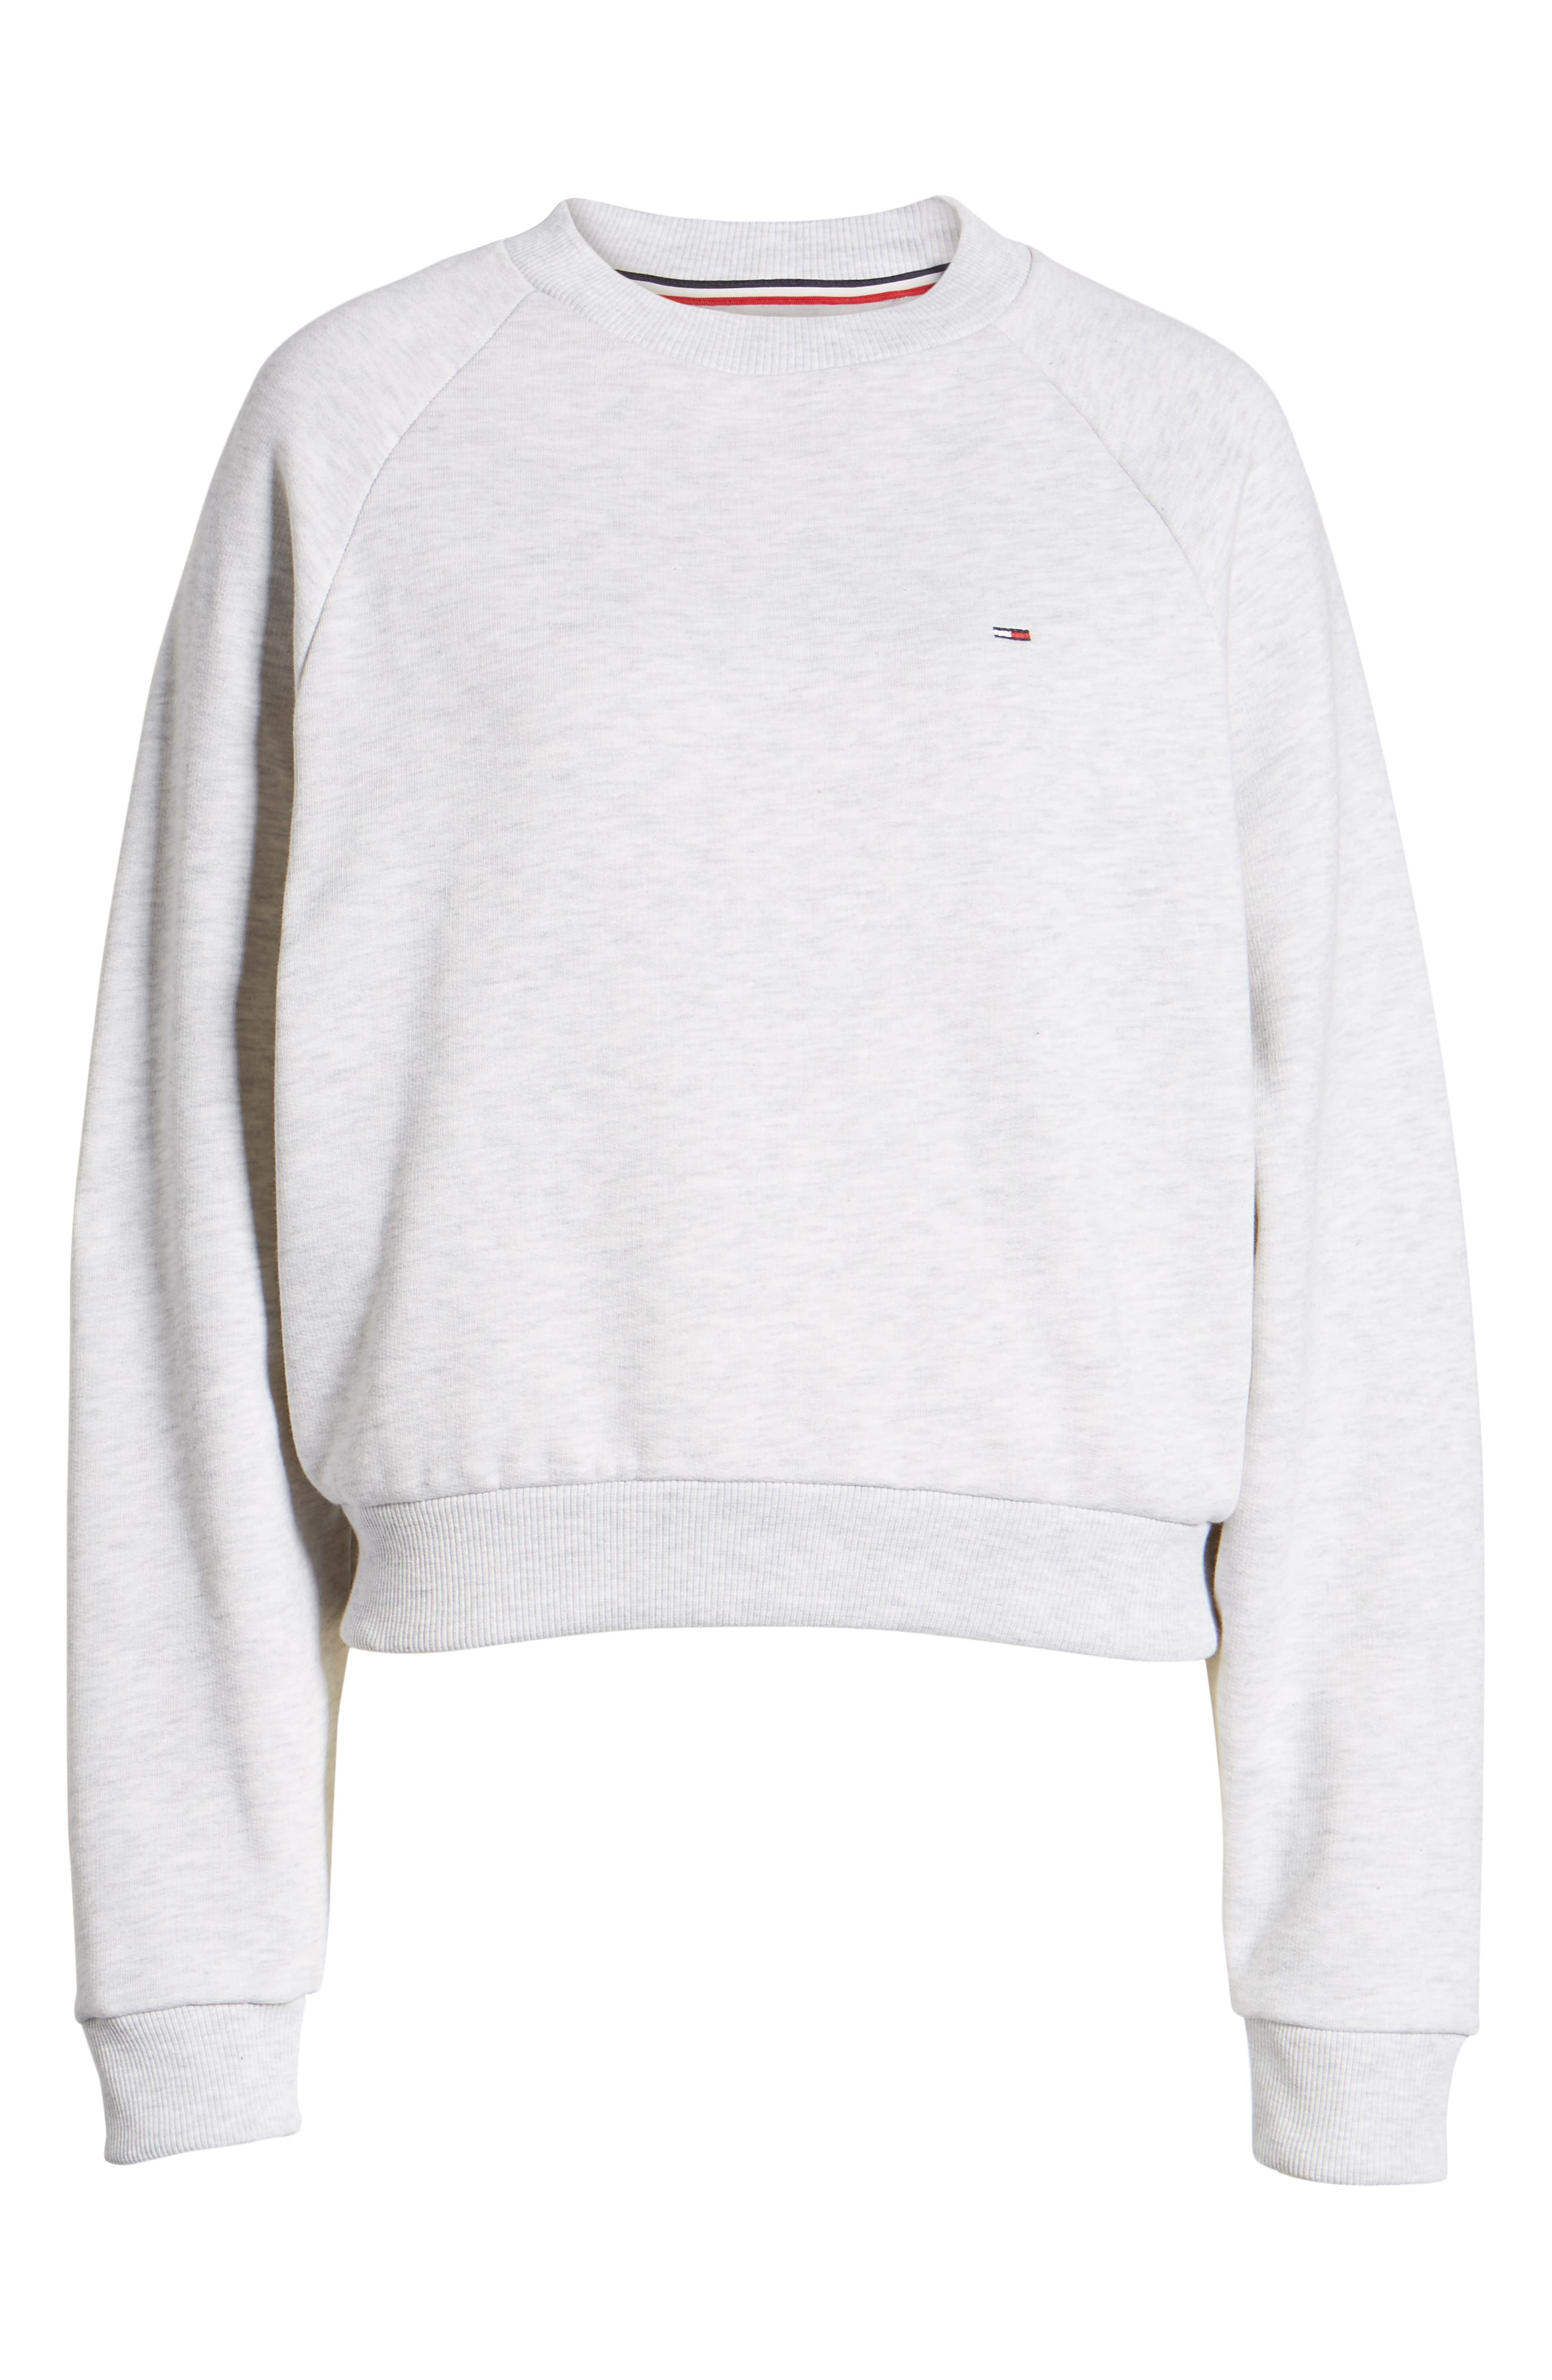 TJW Raglan Sweatshirt,                             Alternate thumbnail 6, color,                             PALE GREY HEATHER